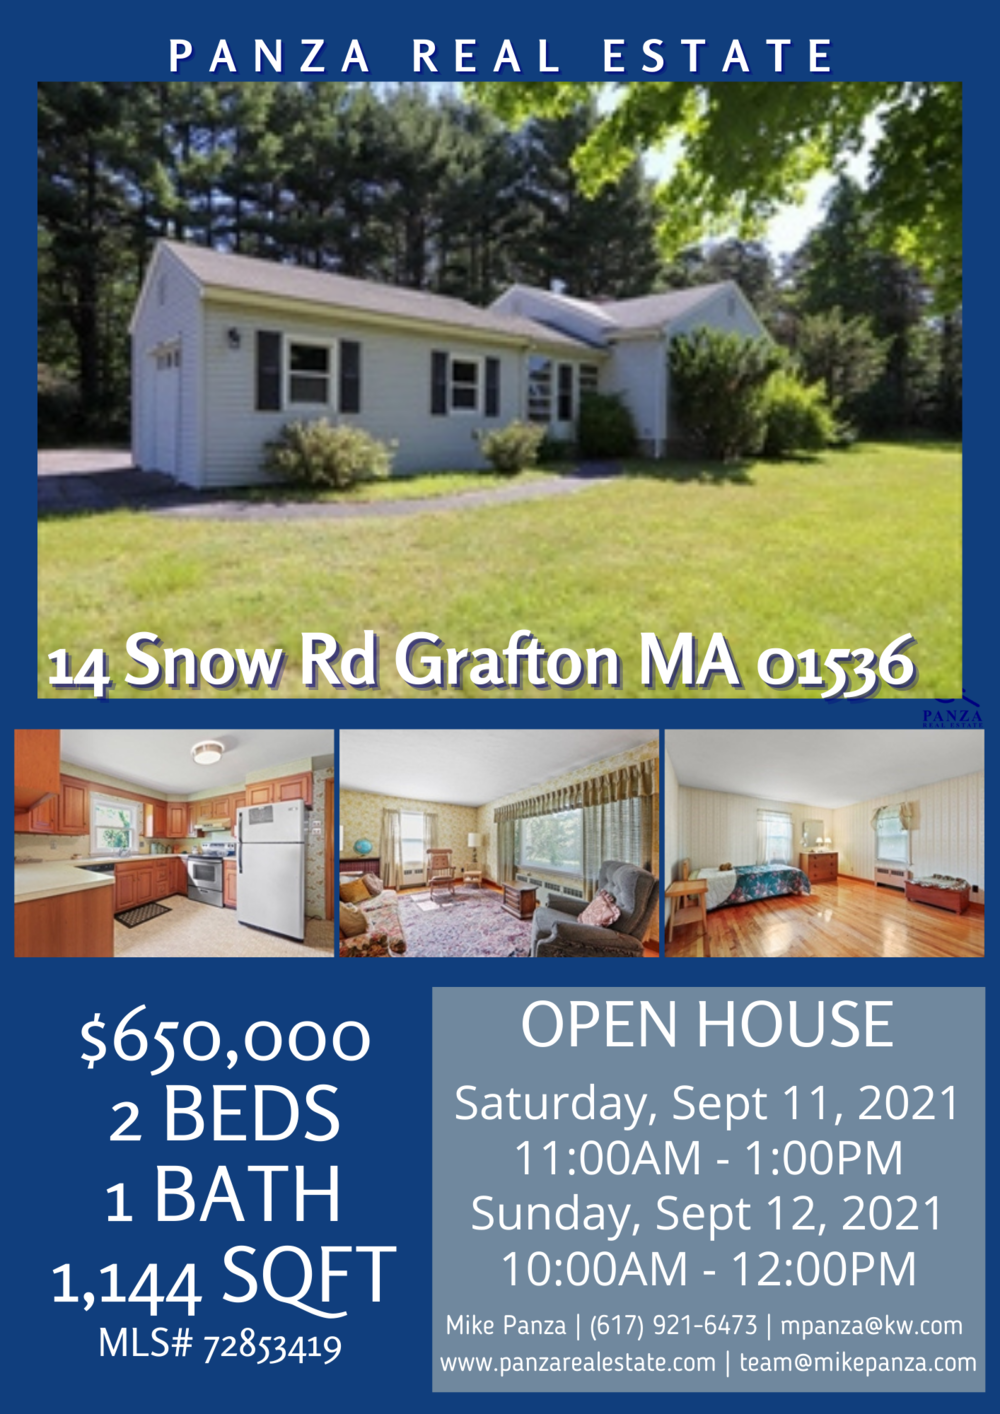 Open House 2021 - 14 Snow Rd Grafton MA 01536.png